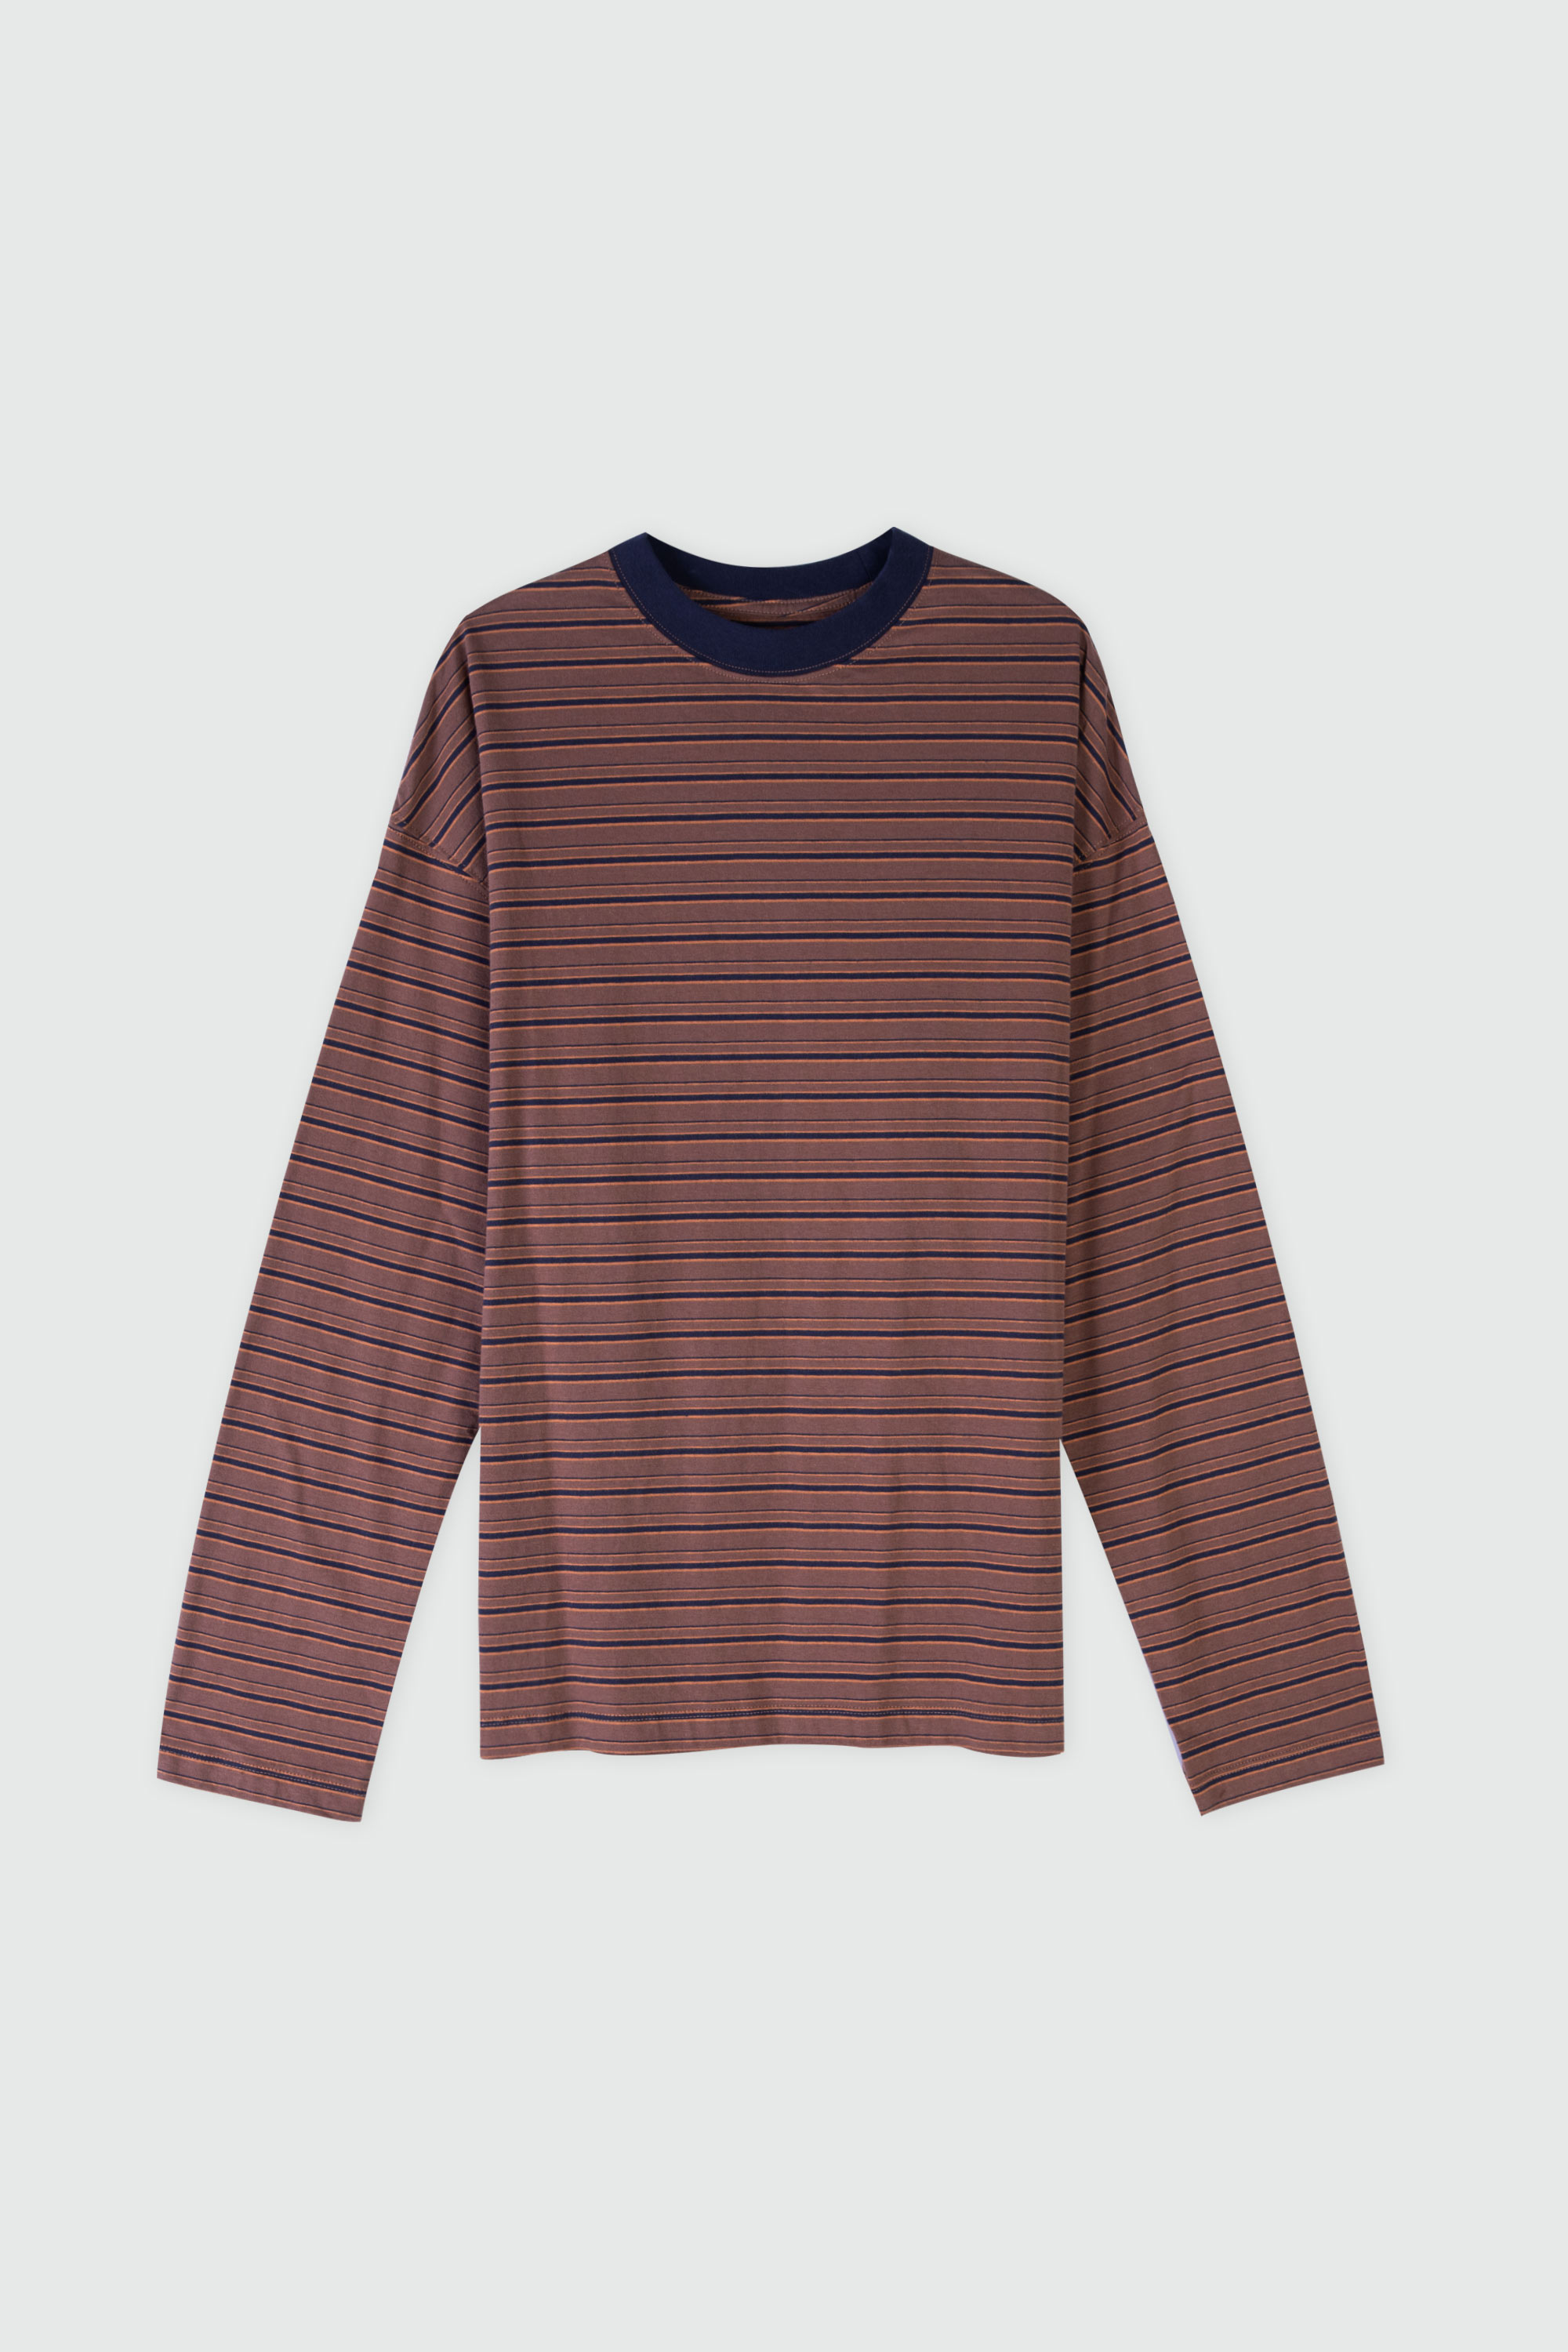 TShirt 3313 Brown Stripe 22